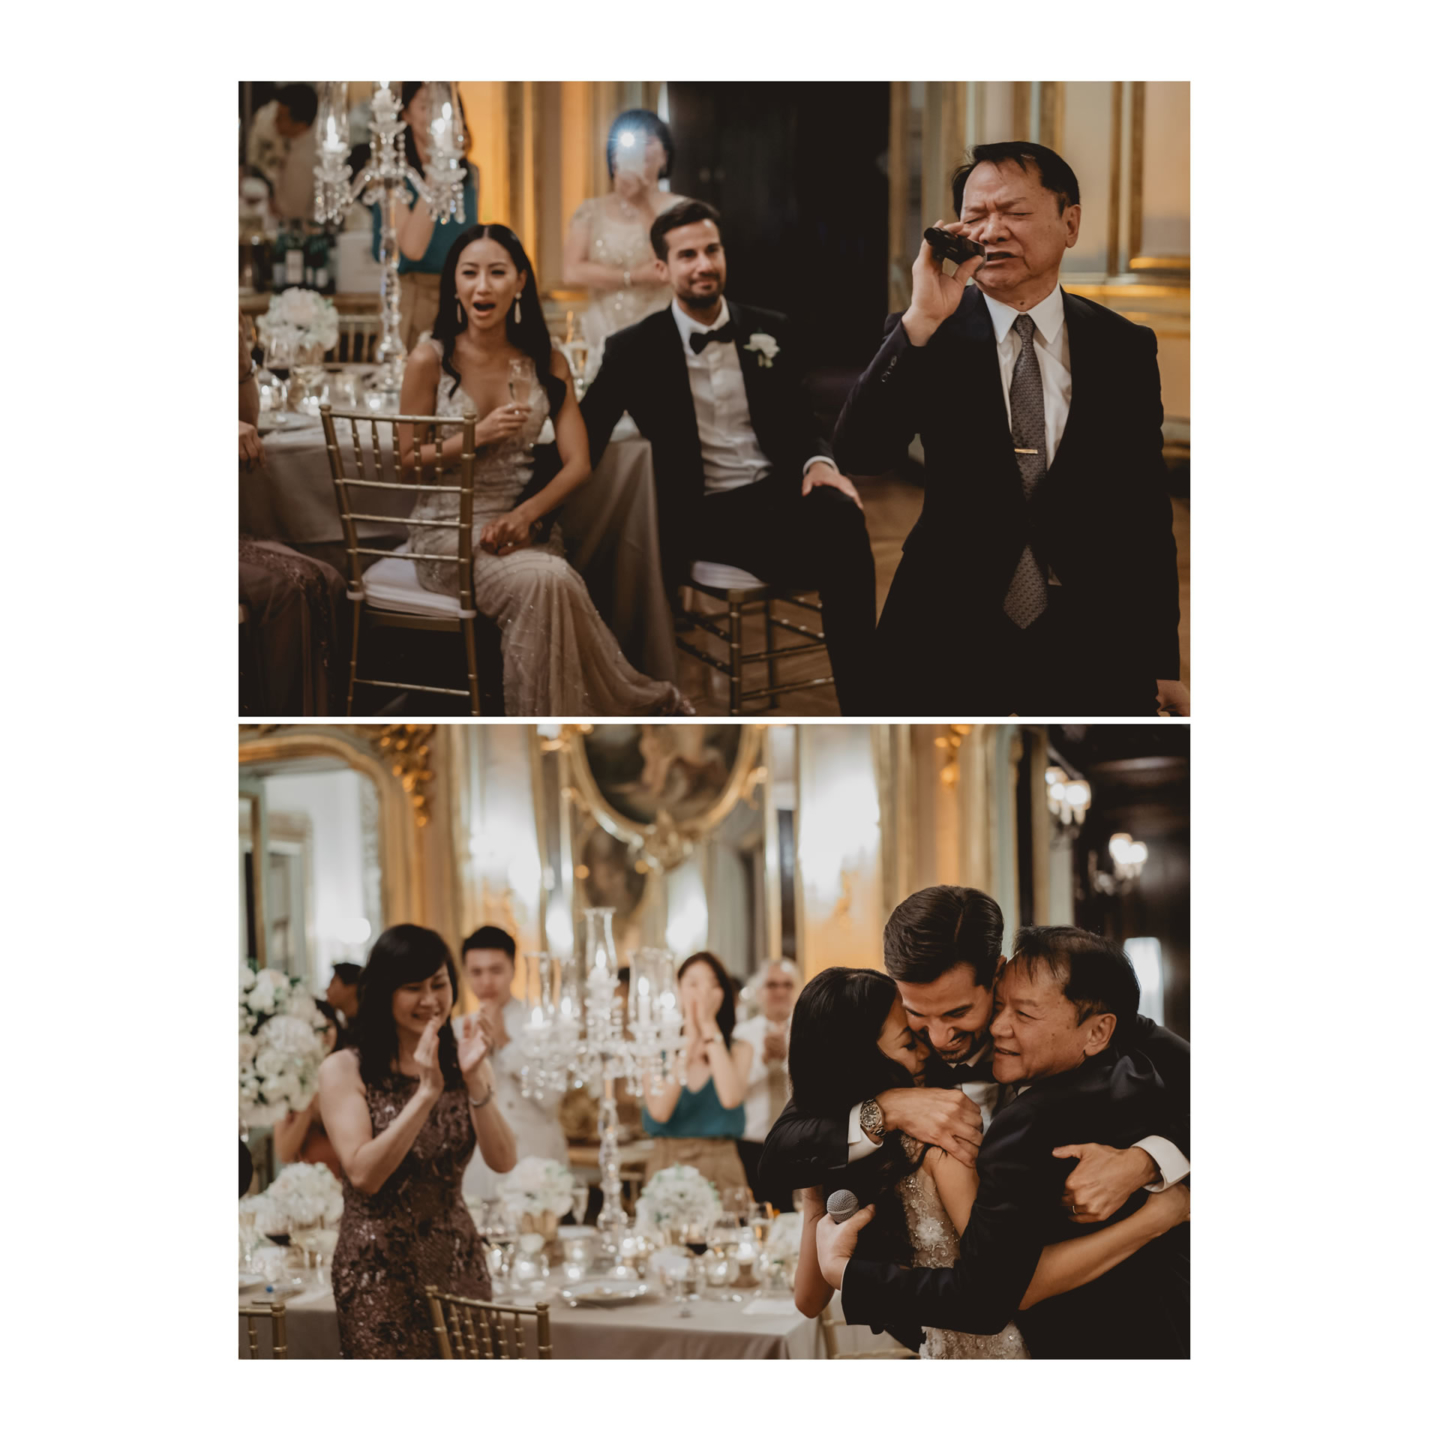 Luxury wedding in Florence (with a chinese tea ceremony) :: Luxury wedding in Florence (with a chinese tea ceremony) :: Luxury wedding photography - 42 :: Luxury wedding in Florence (with a chinese tea ceremony)